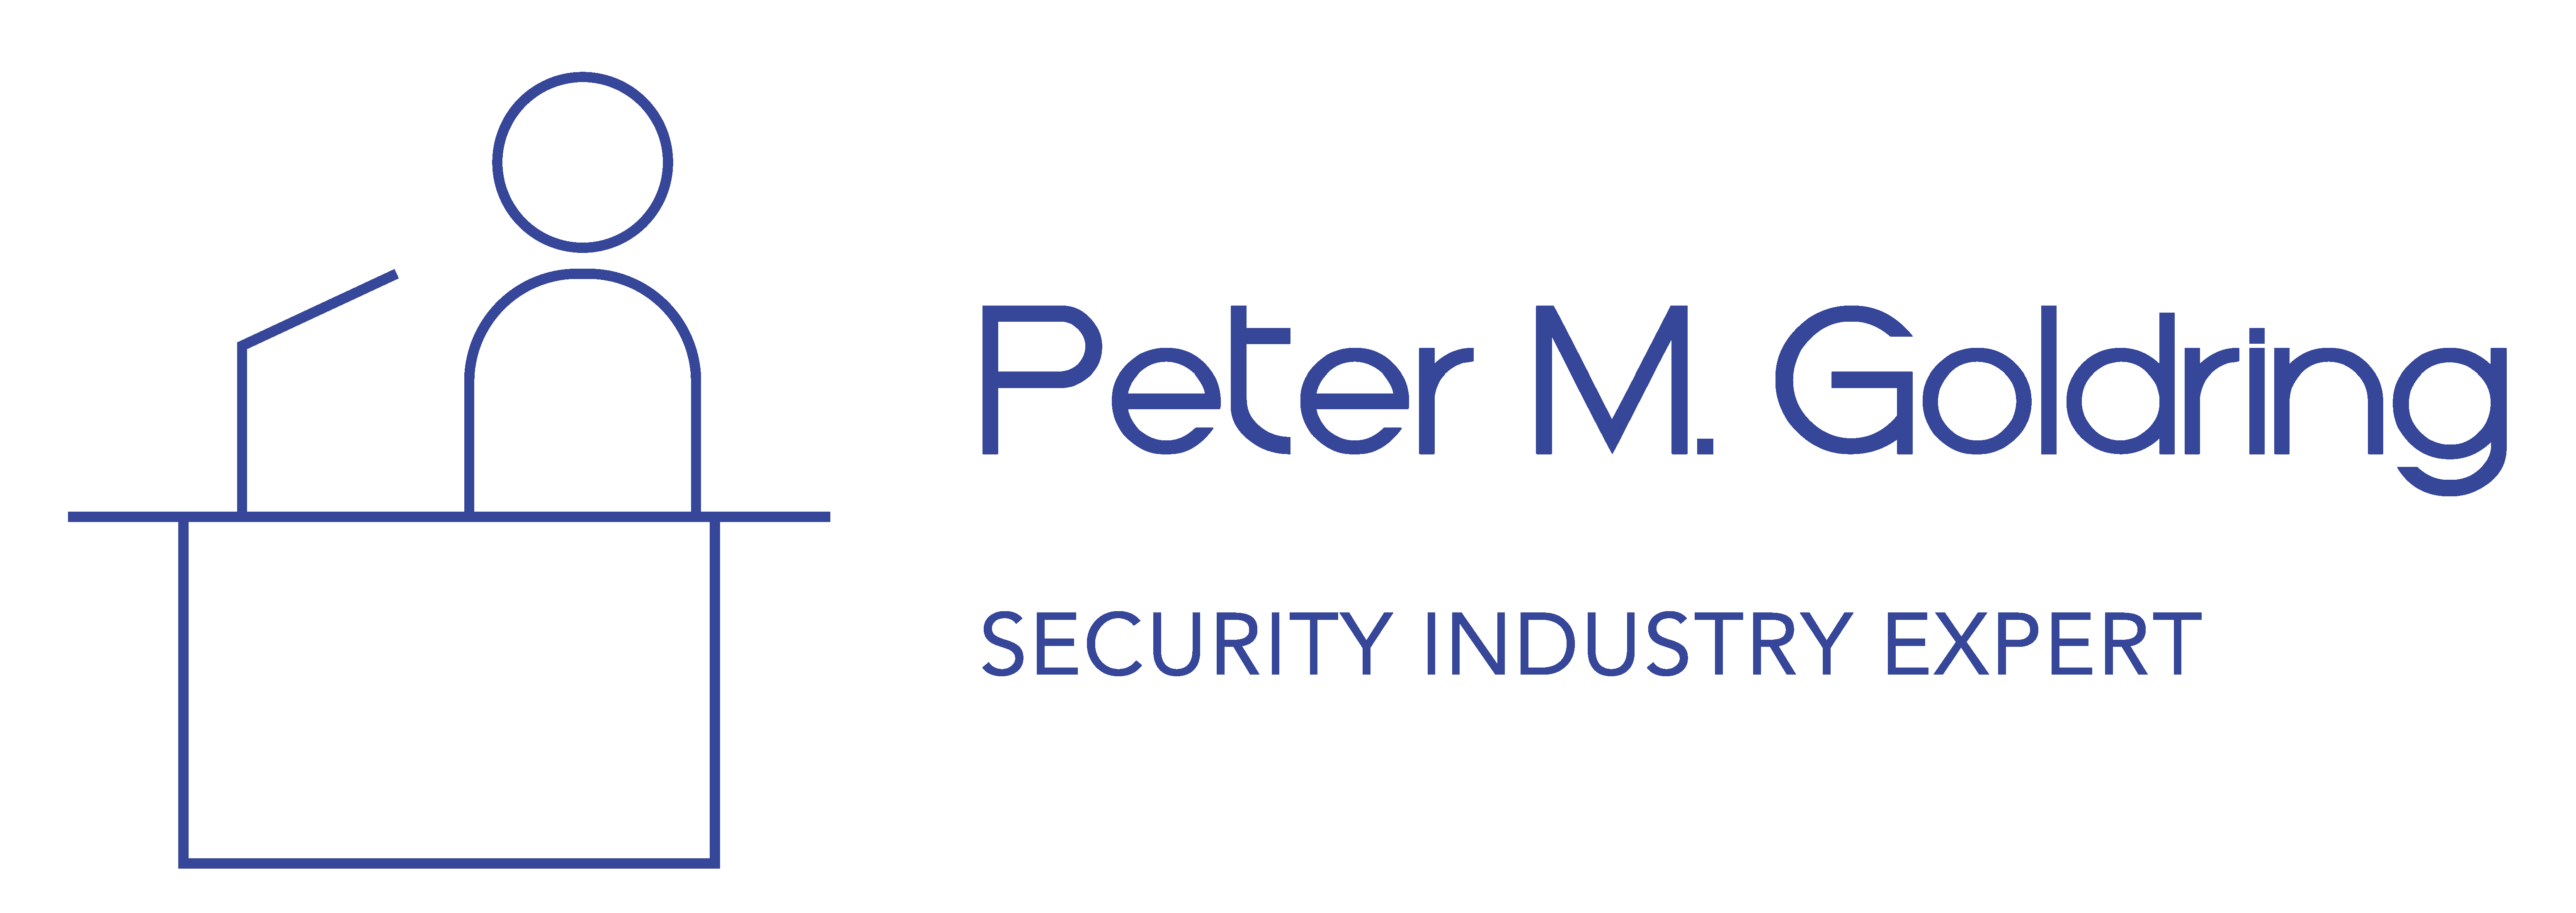 Security Industry Consultant and Expert Witness